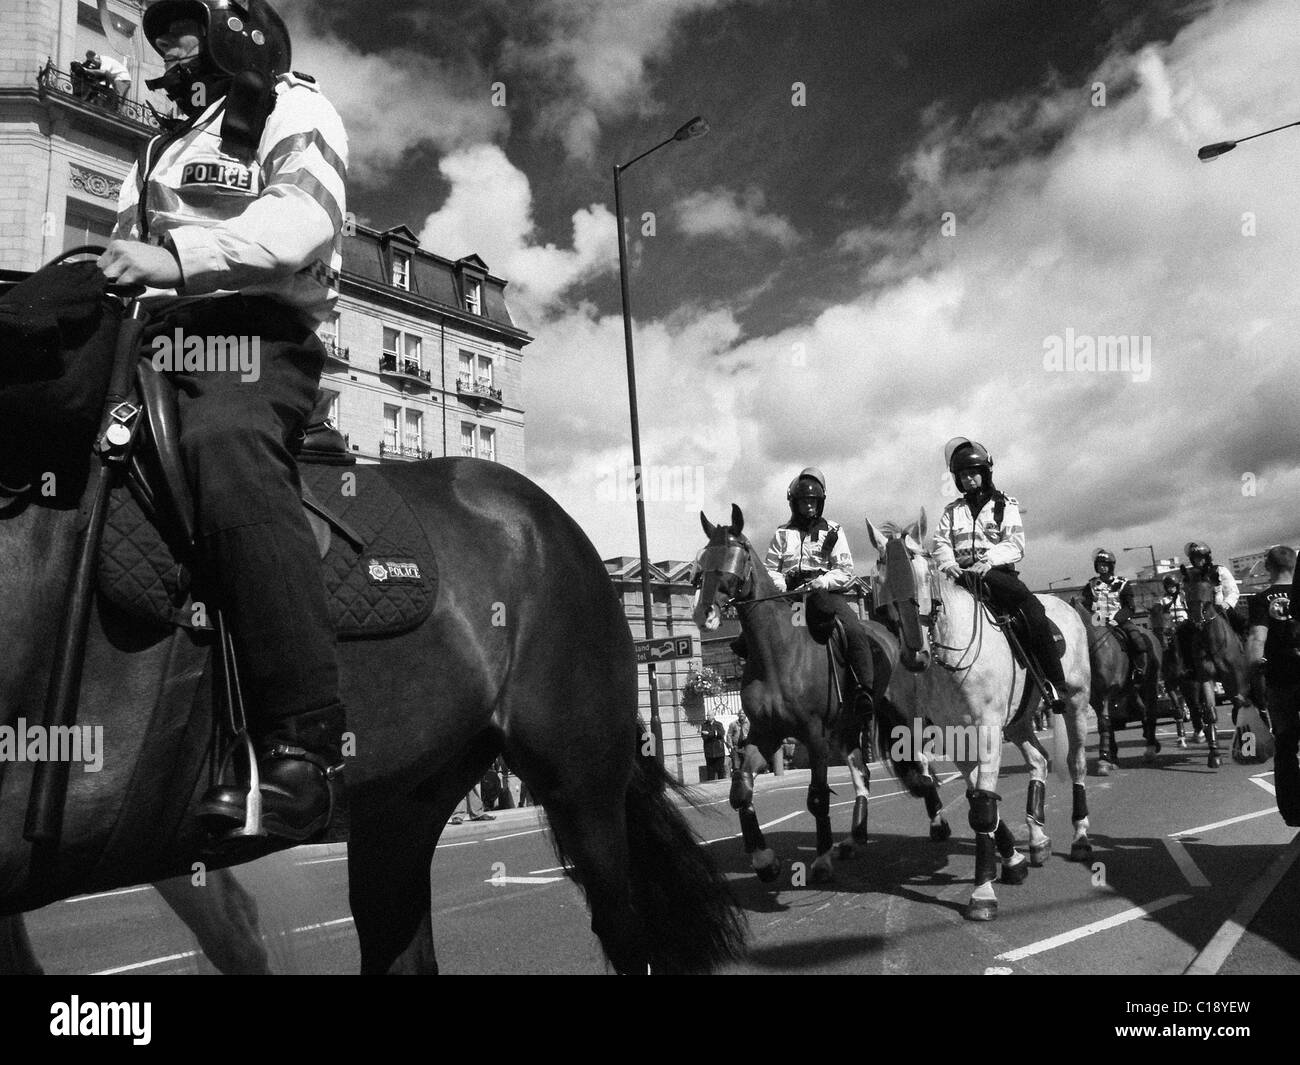 British Riot Police fight to control demonstrators of the EDL (English Defence League) at Bradford. - Stock Image